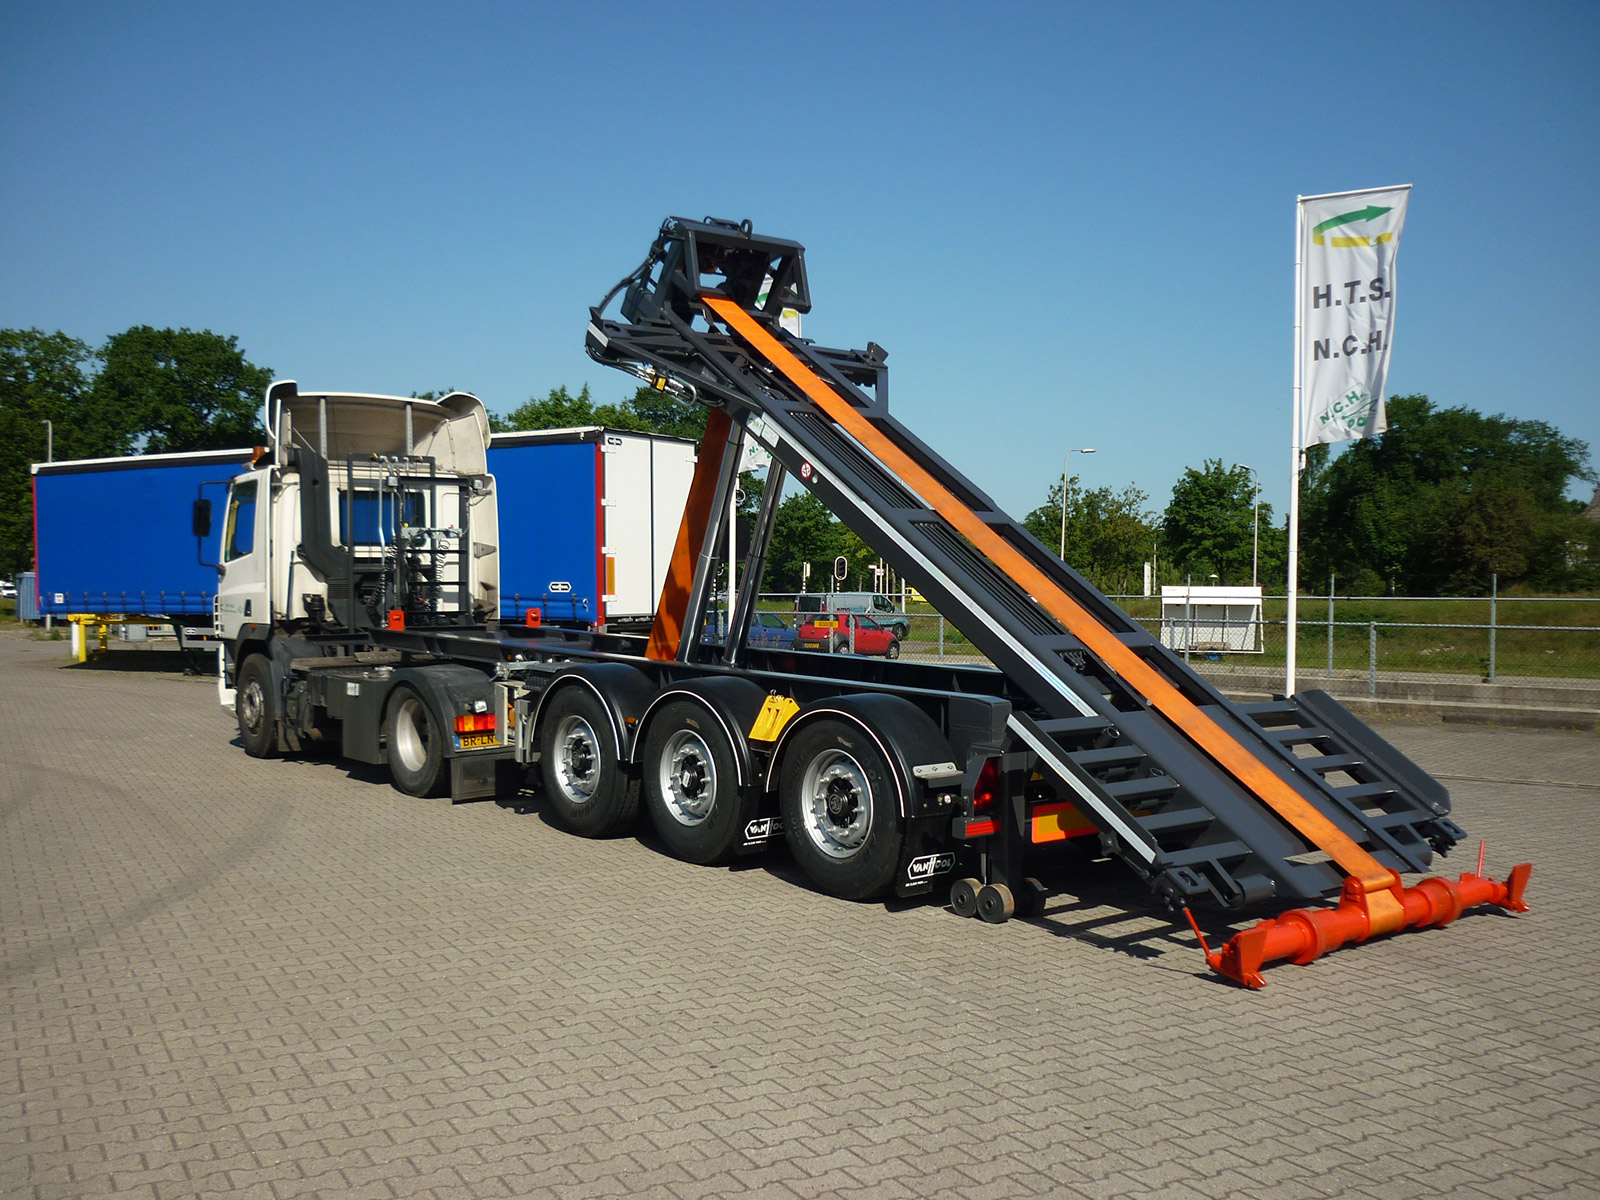 Van Zandwijk HTS-NCH Verti Light 20 ft ISO Combi